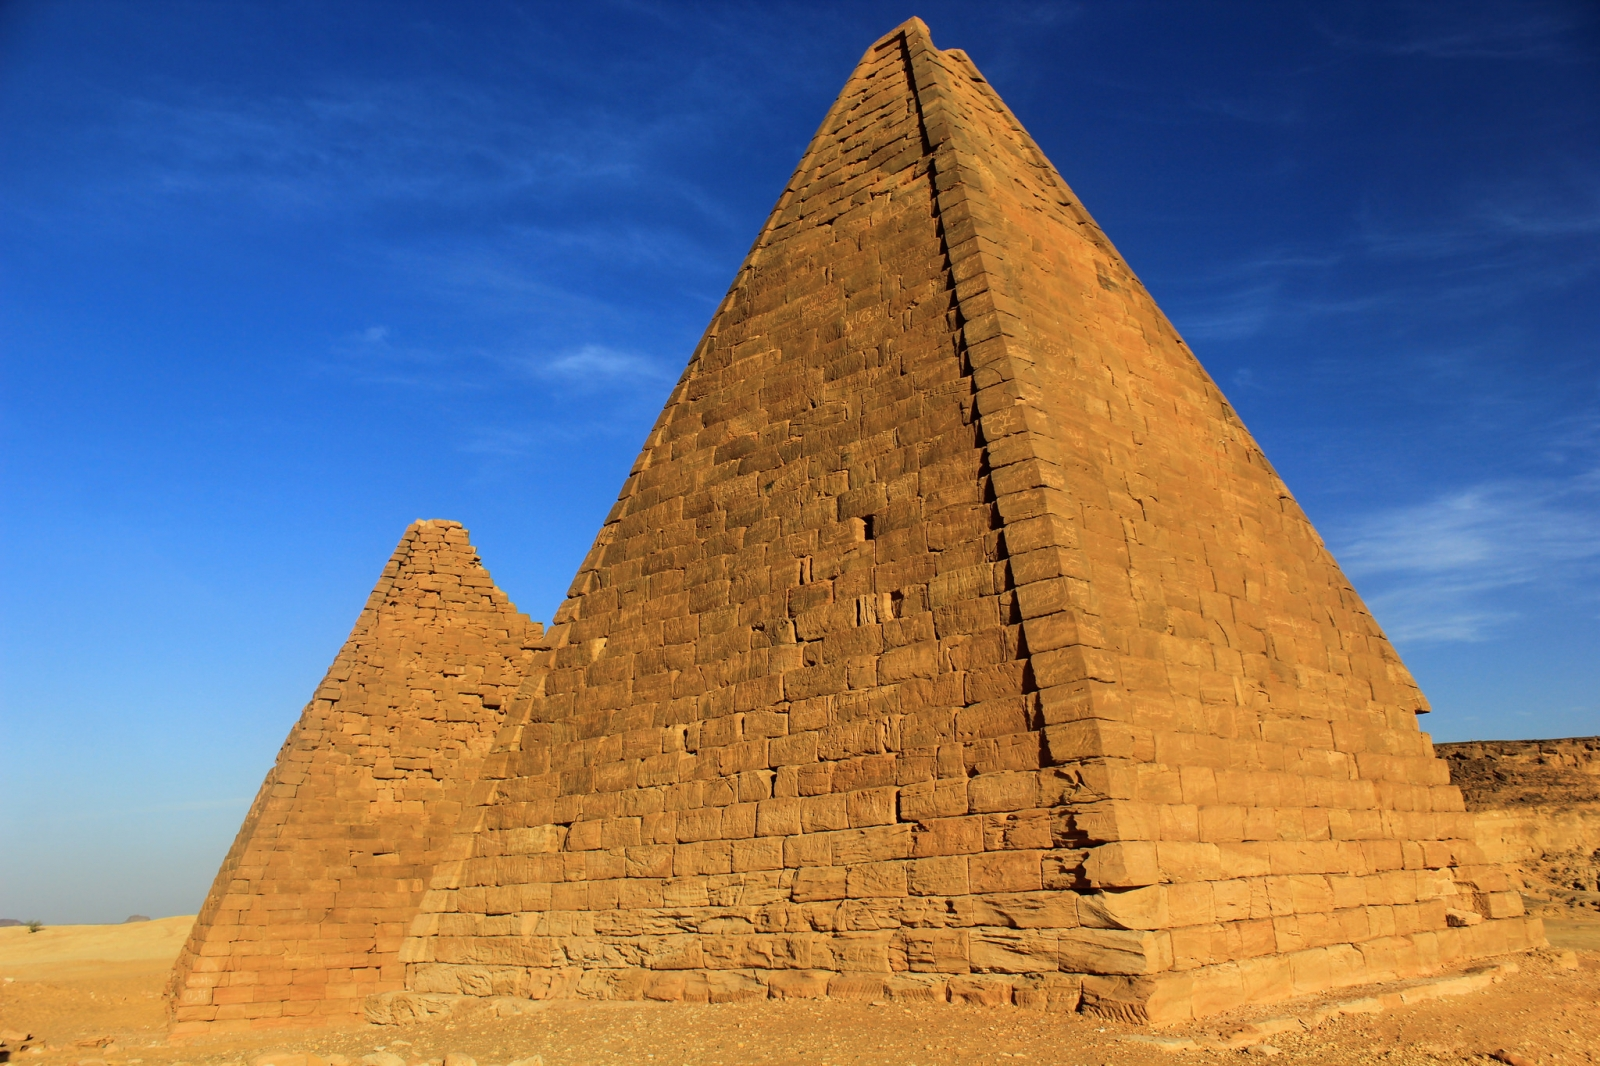 an analysis of the pyramids of ancient egypt in archeology Explore the archaeology, history, art, and hieroglyphs surrounding the famous egyptian pyramids at giza learn about old kingdom pharaohs and elites, tombs, temples, the sphinx, and how new technology is unlocking their secrets.